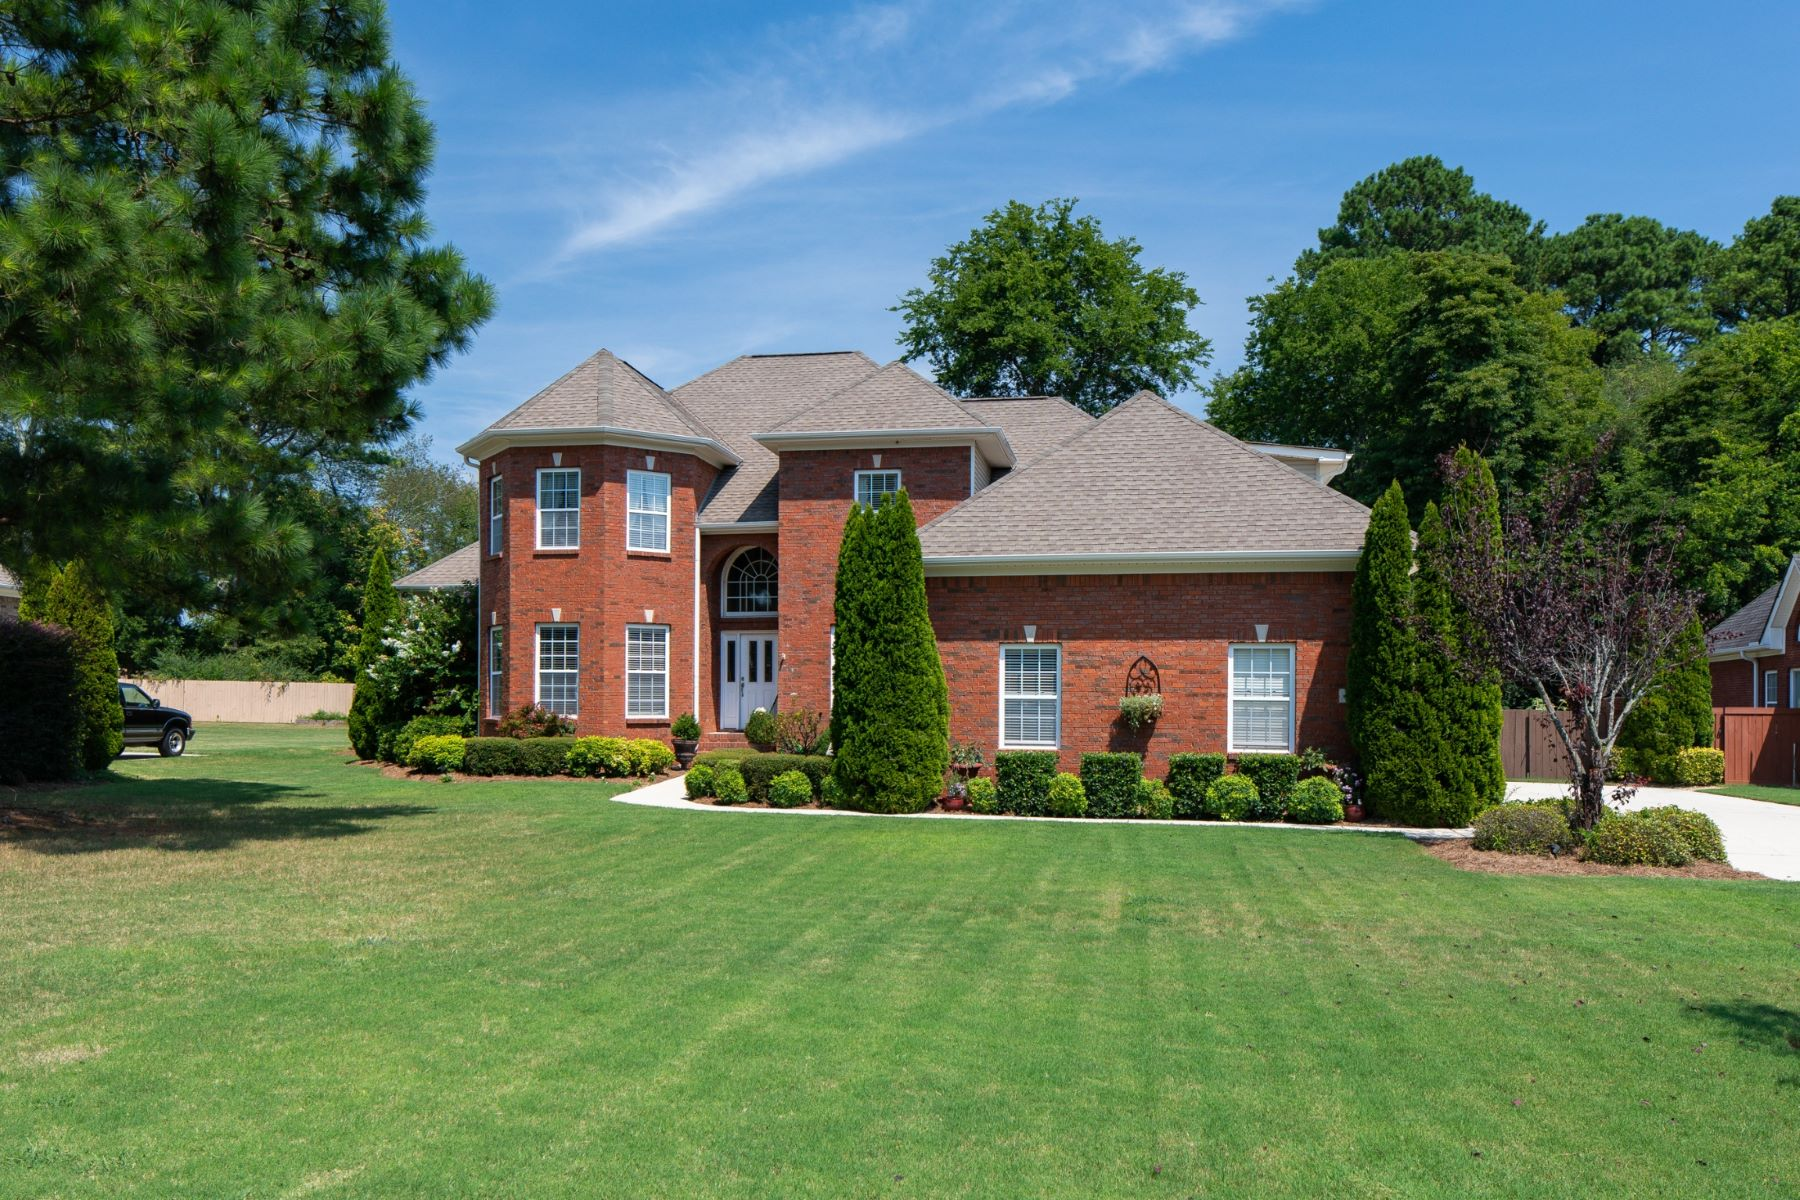 Single Family Homes for Active at 109 Old Orchard Drive Huntsville, Alabama 35811 United States